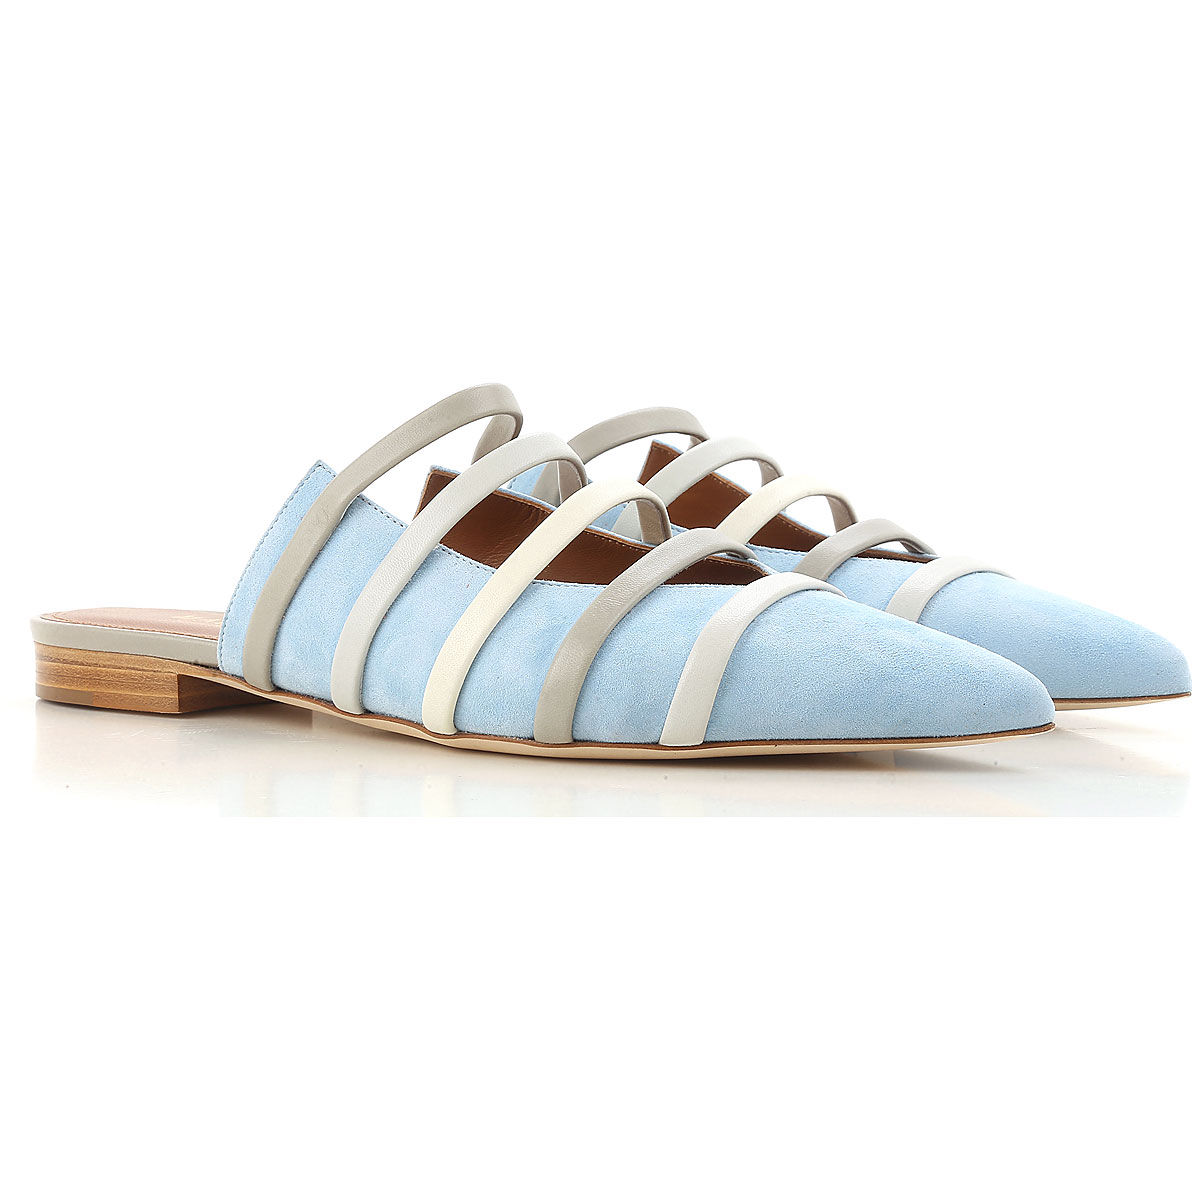 Image of Malone Souliers Ballet Flats Ballerina Shoes for Women On Sale, Powder Blue, Suede leather, 2017, 10 6 6.5 7 8 8.5 9